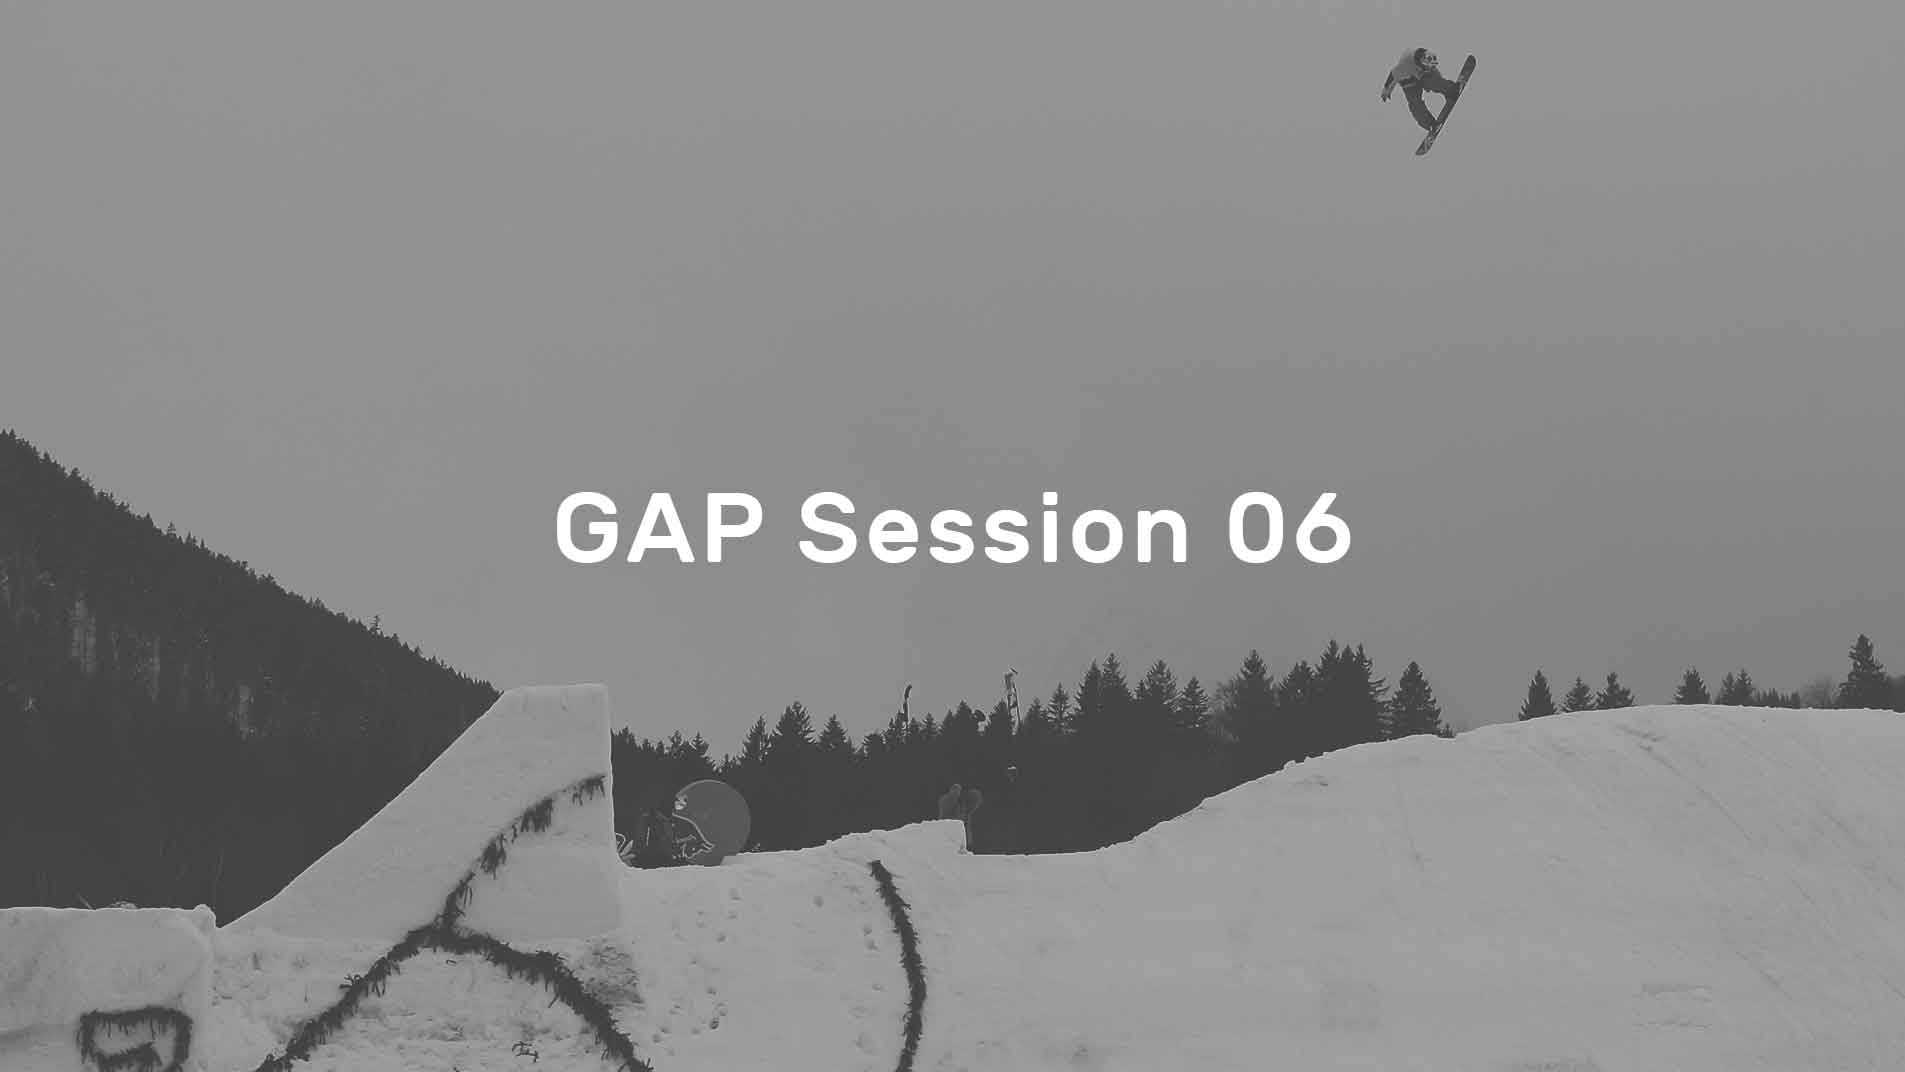 Gap Session I